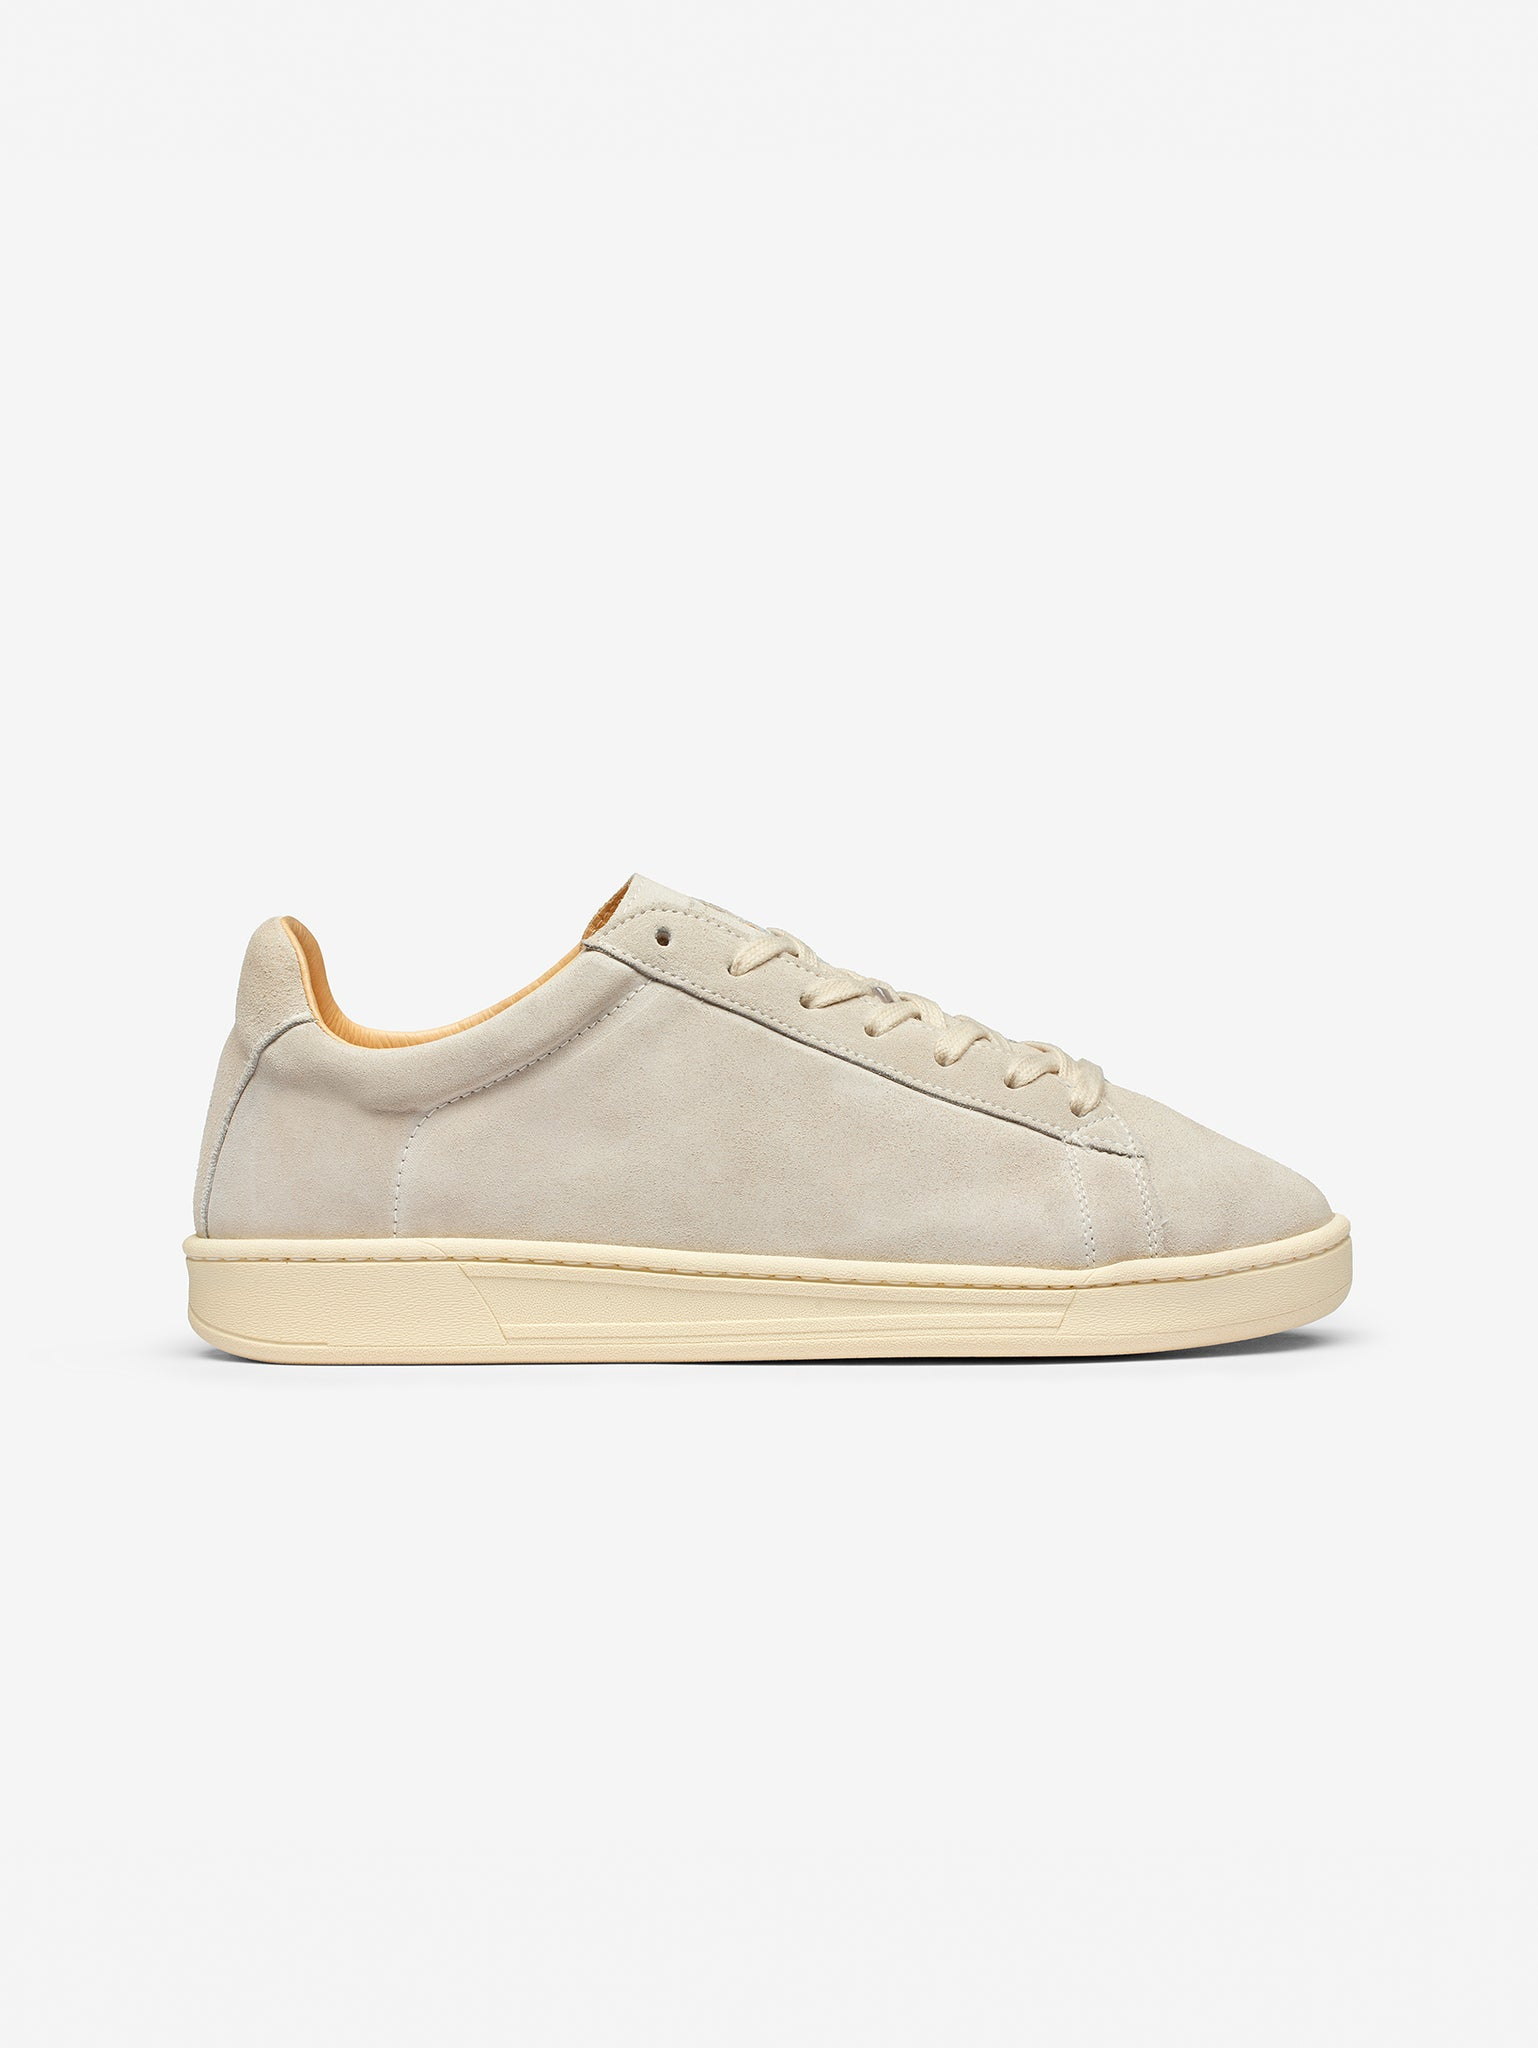 1971 - White Suede Trainer